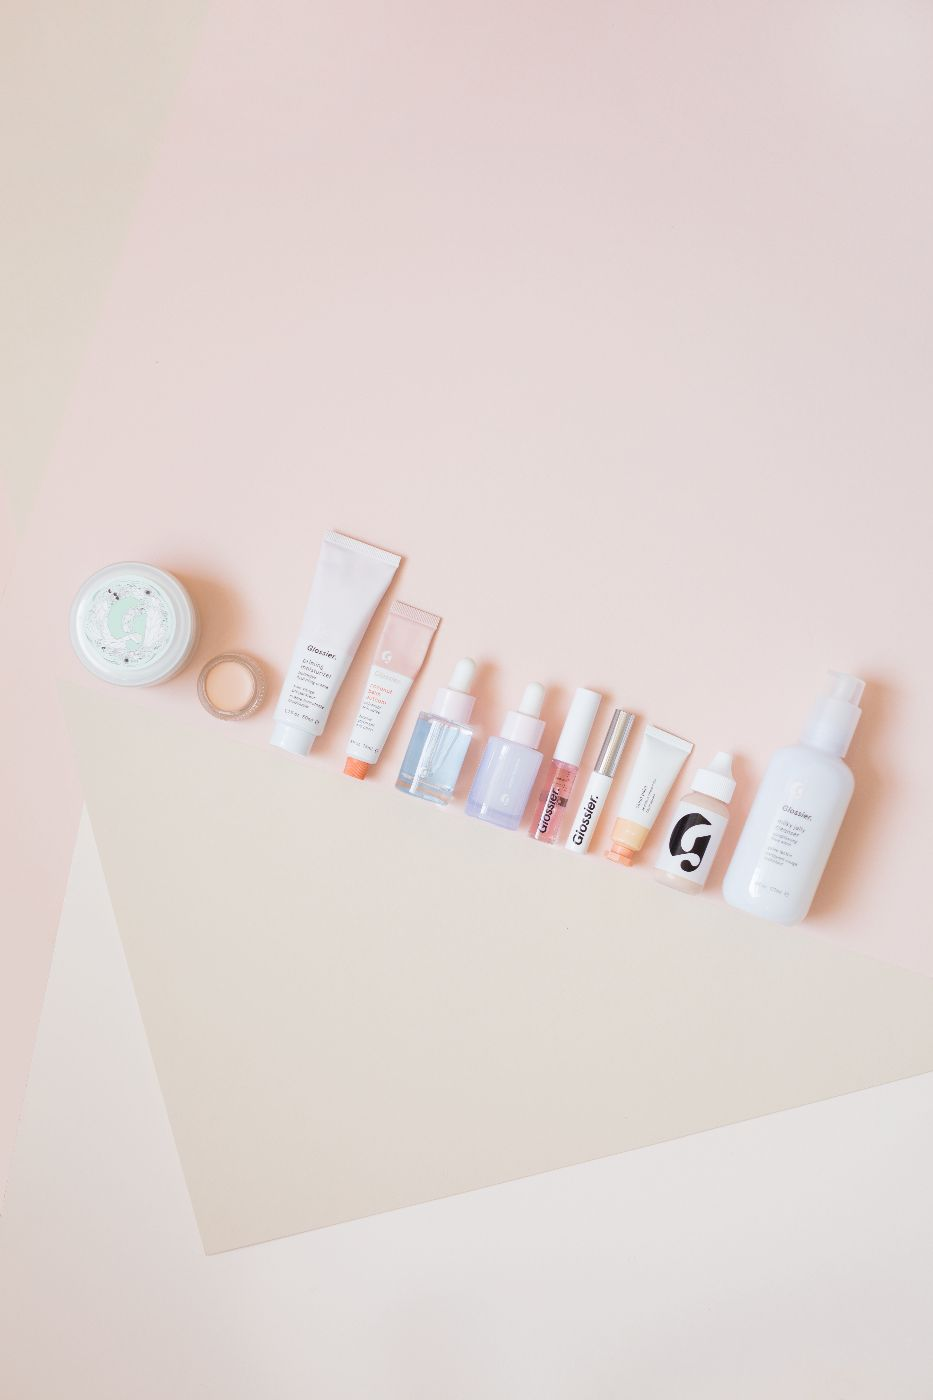 theannaedit-what-to-buy-in-nyc-america-beauty-sephora-glossier-itcosmetics-september-2017-6